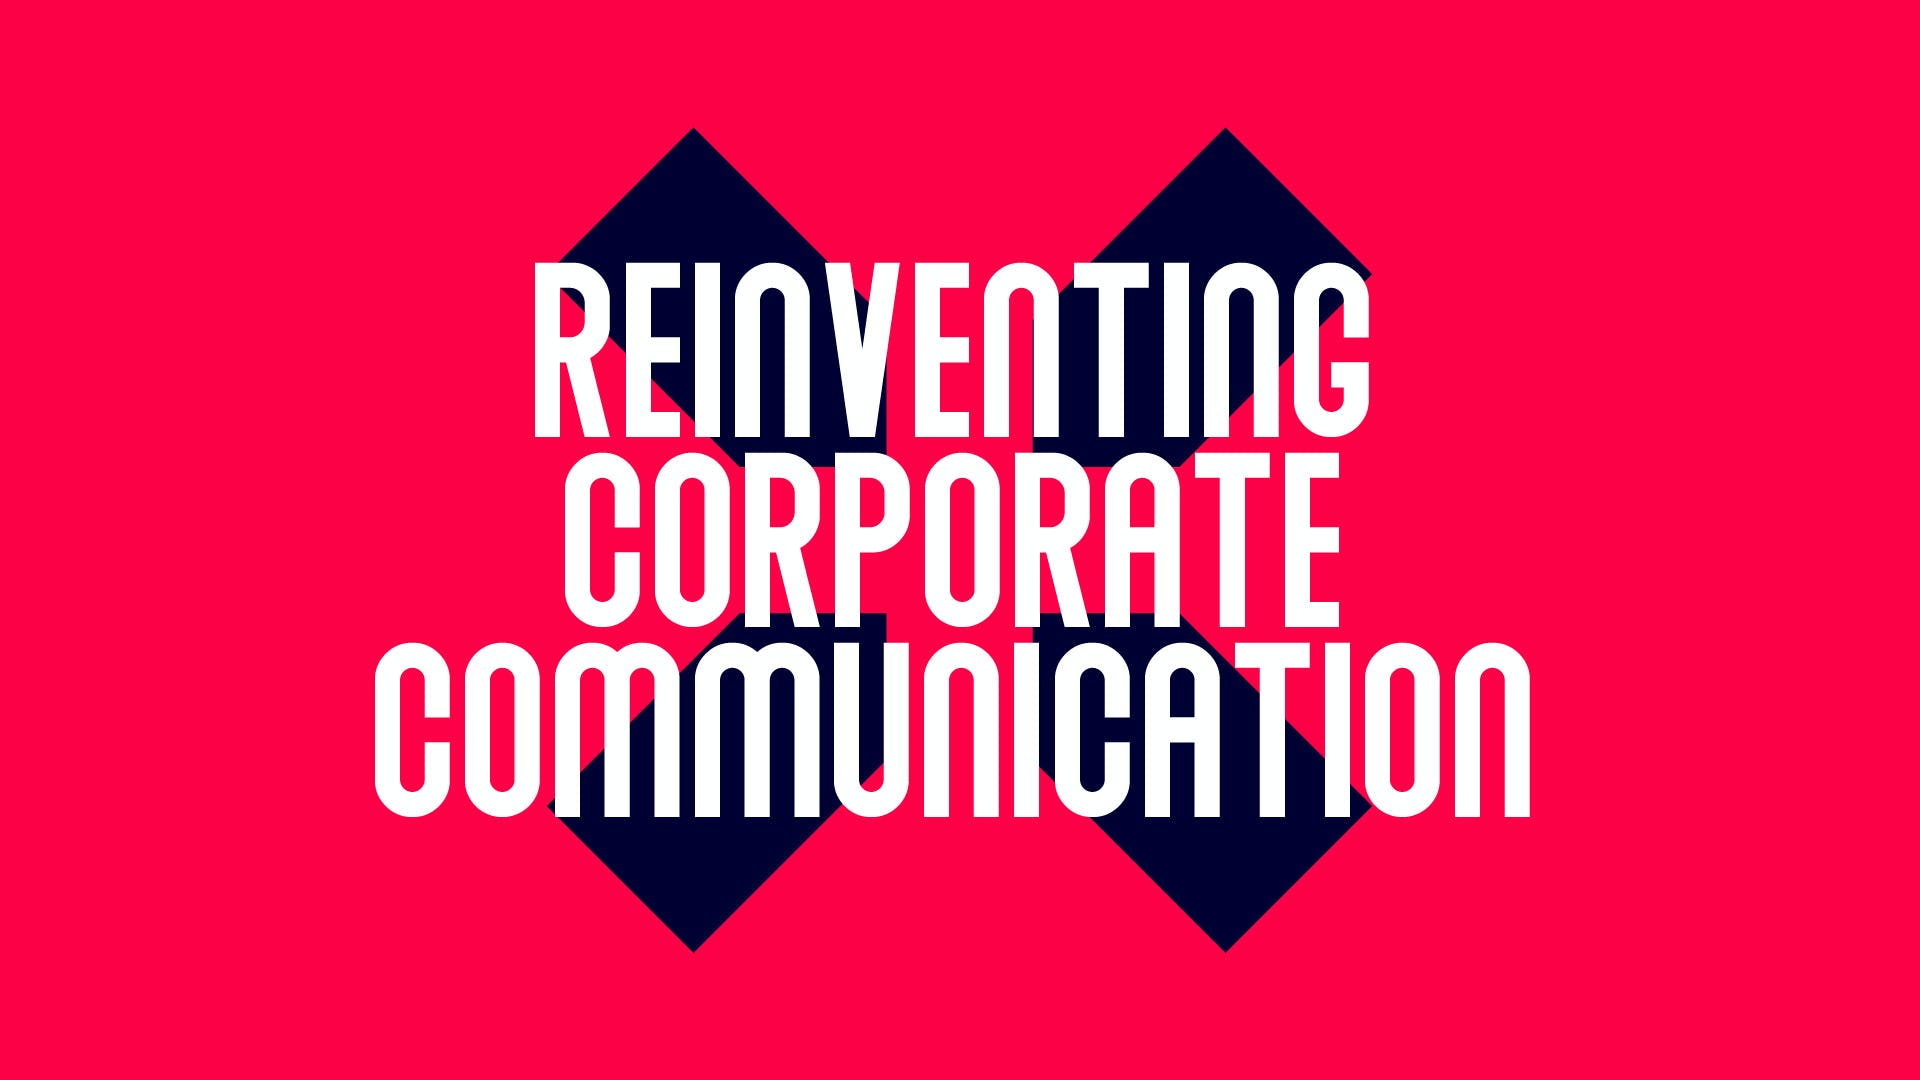 Reinventing corporate communication